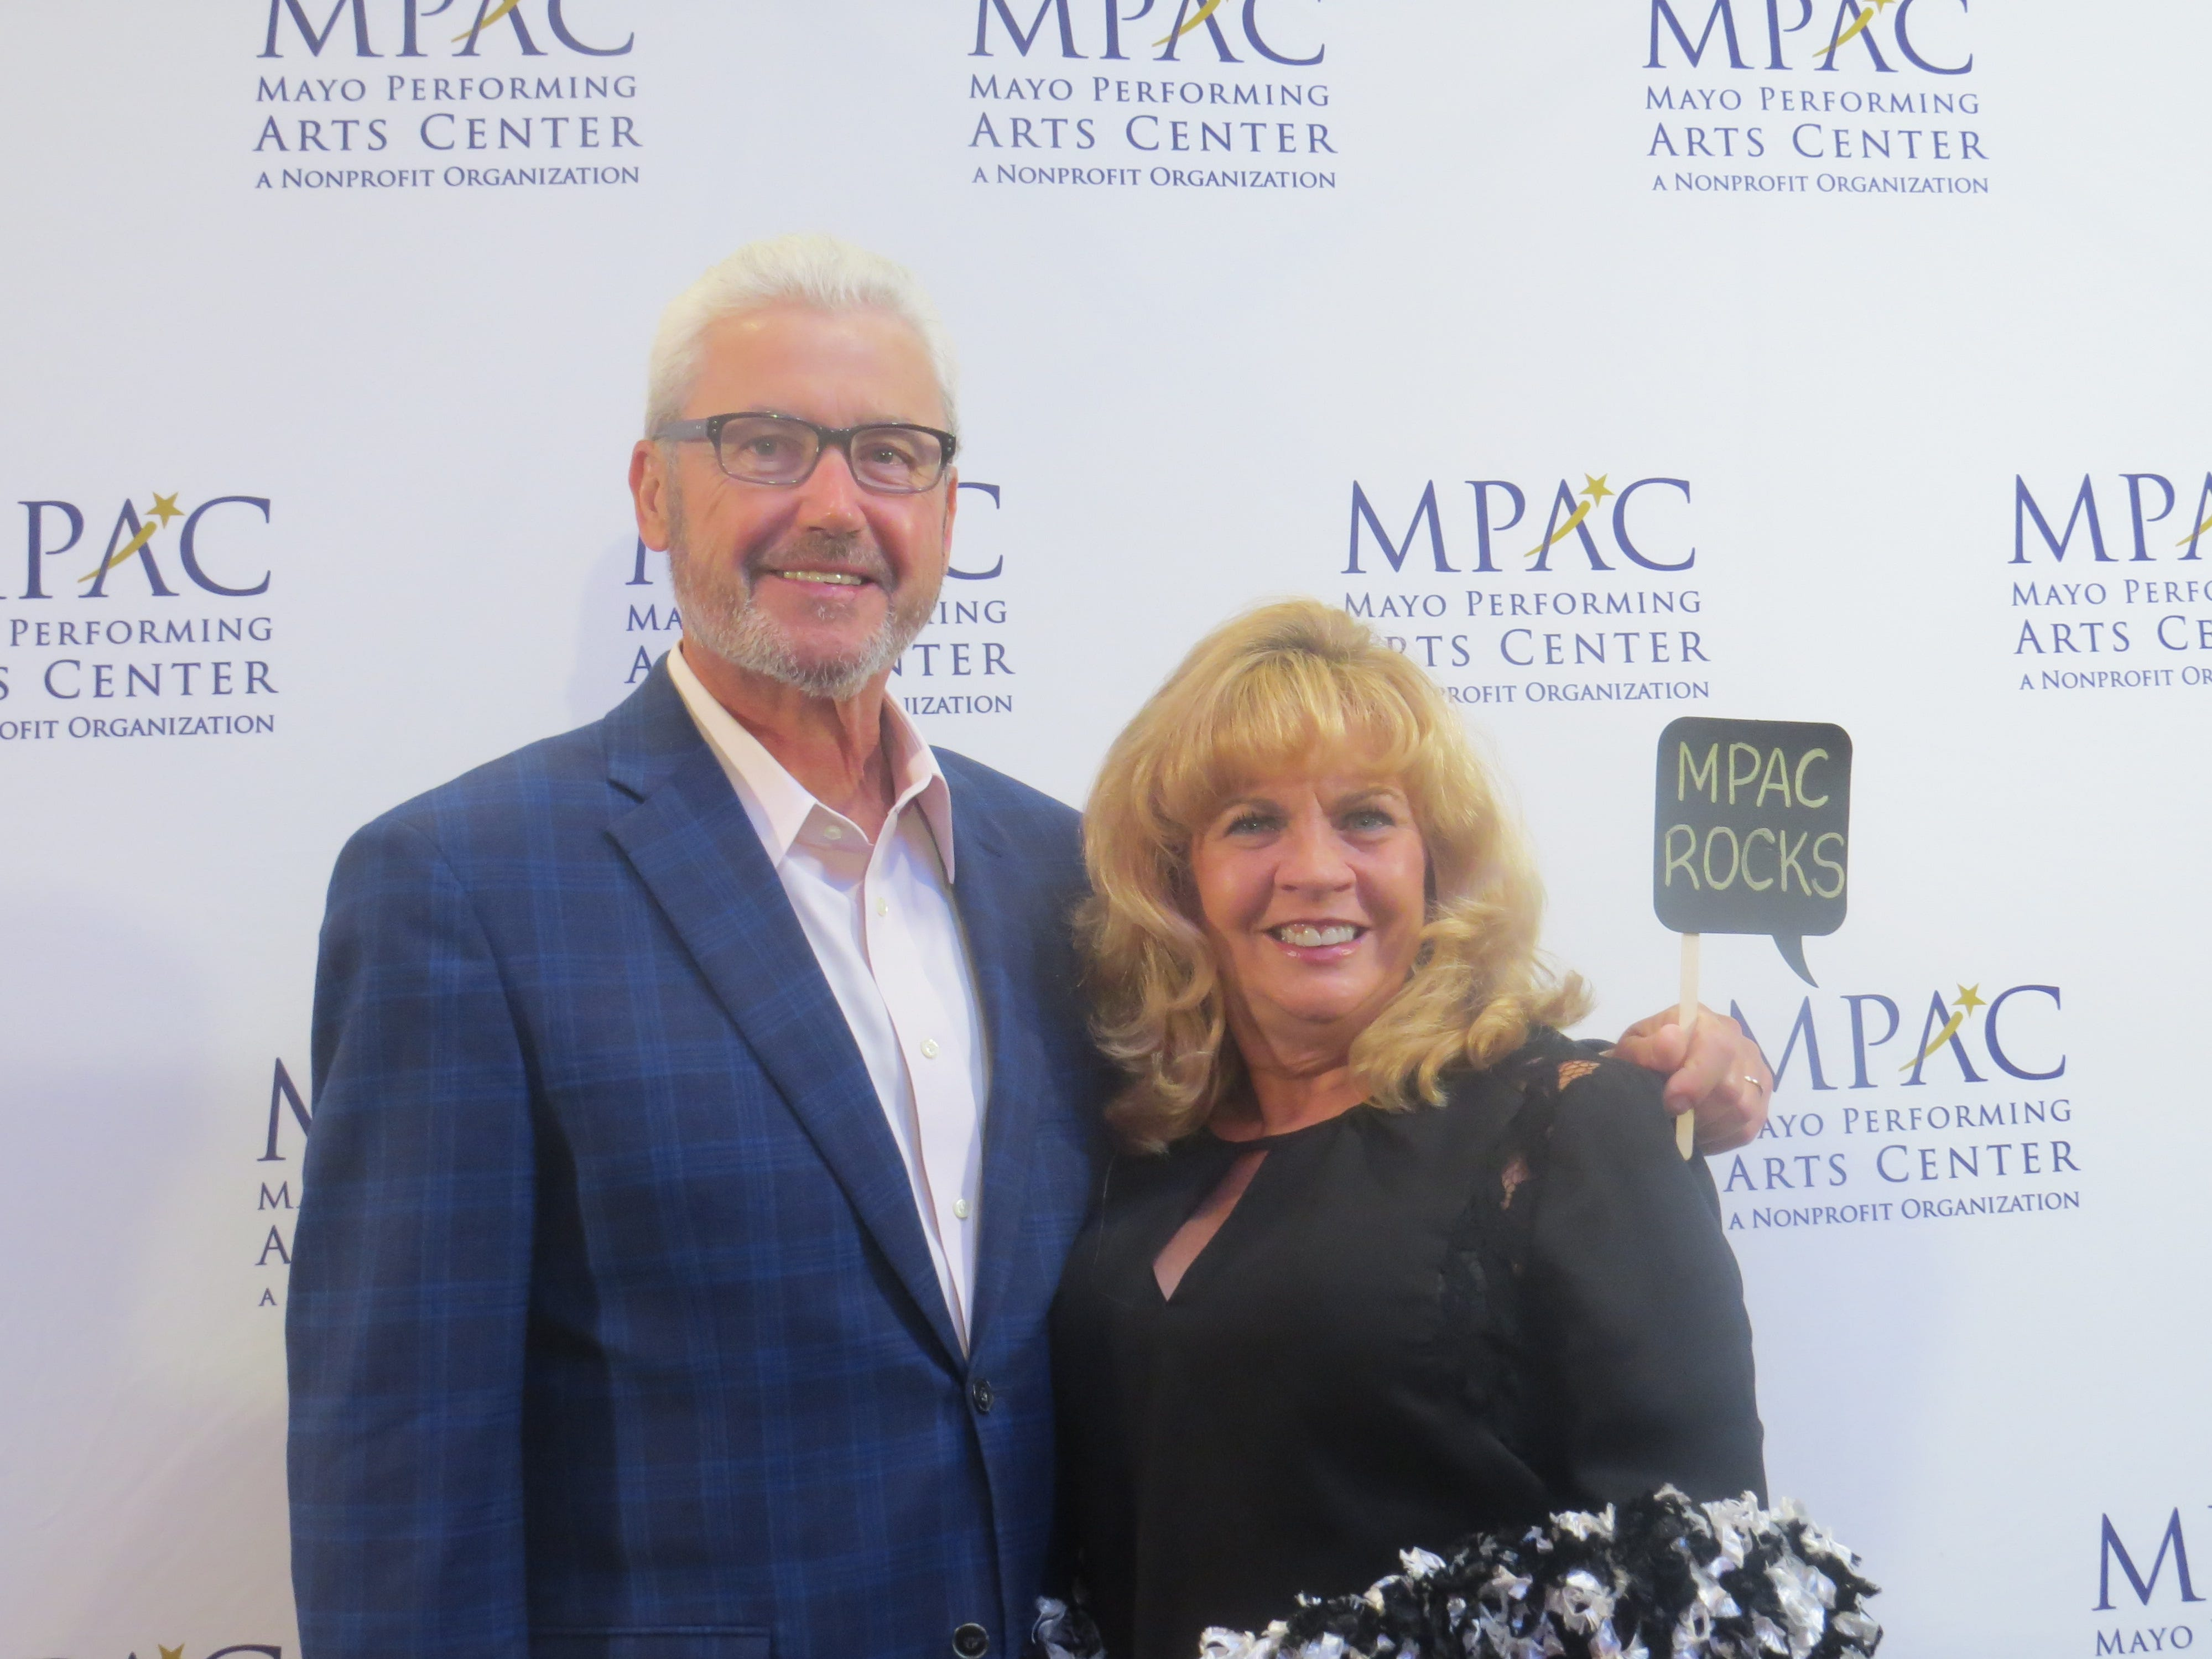 Opening night of the 2018-19 season at the Mayo Performing Arts Center in Morristown: Morristown Mayor Timothy Dougherty and his wife, Mary.